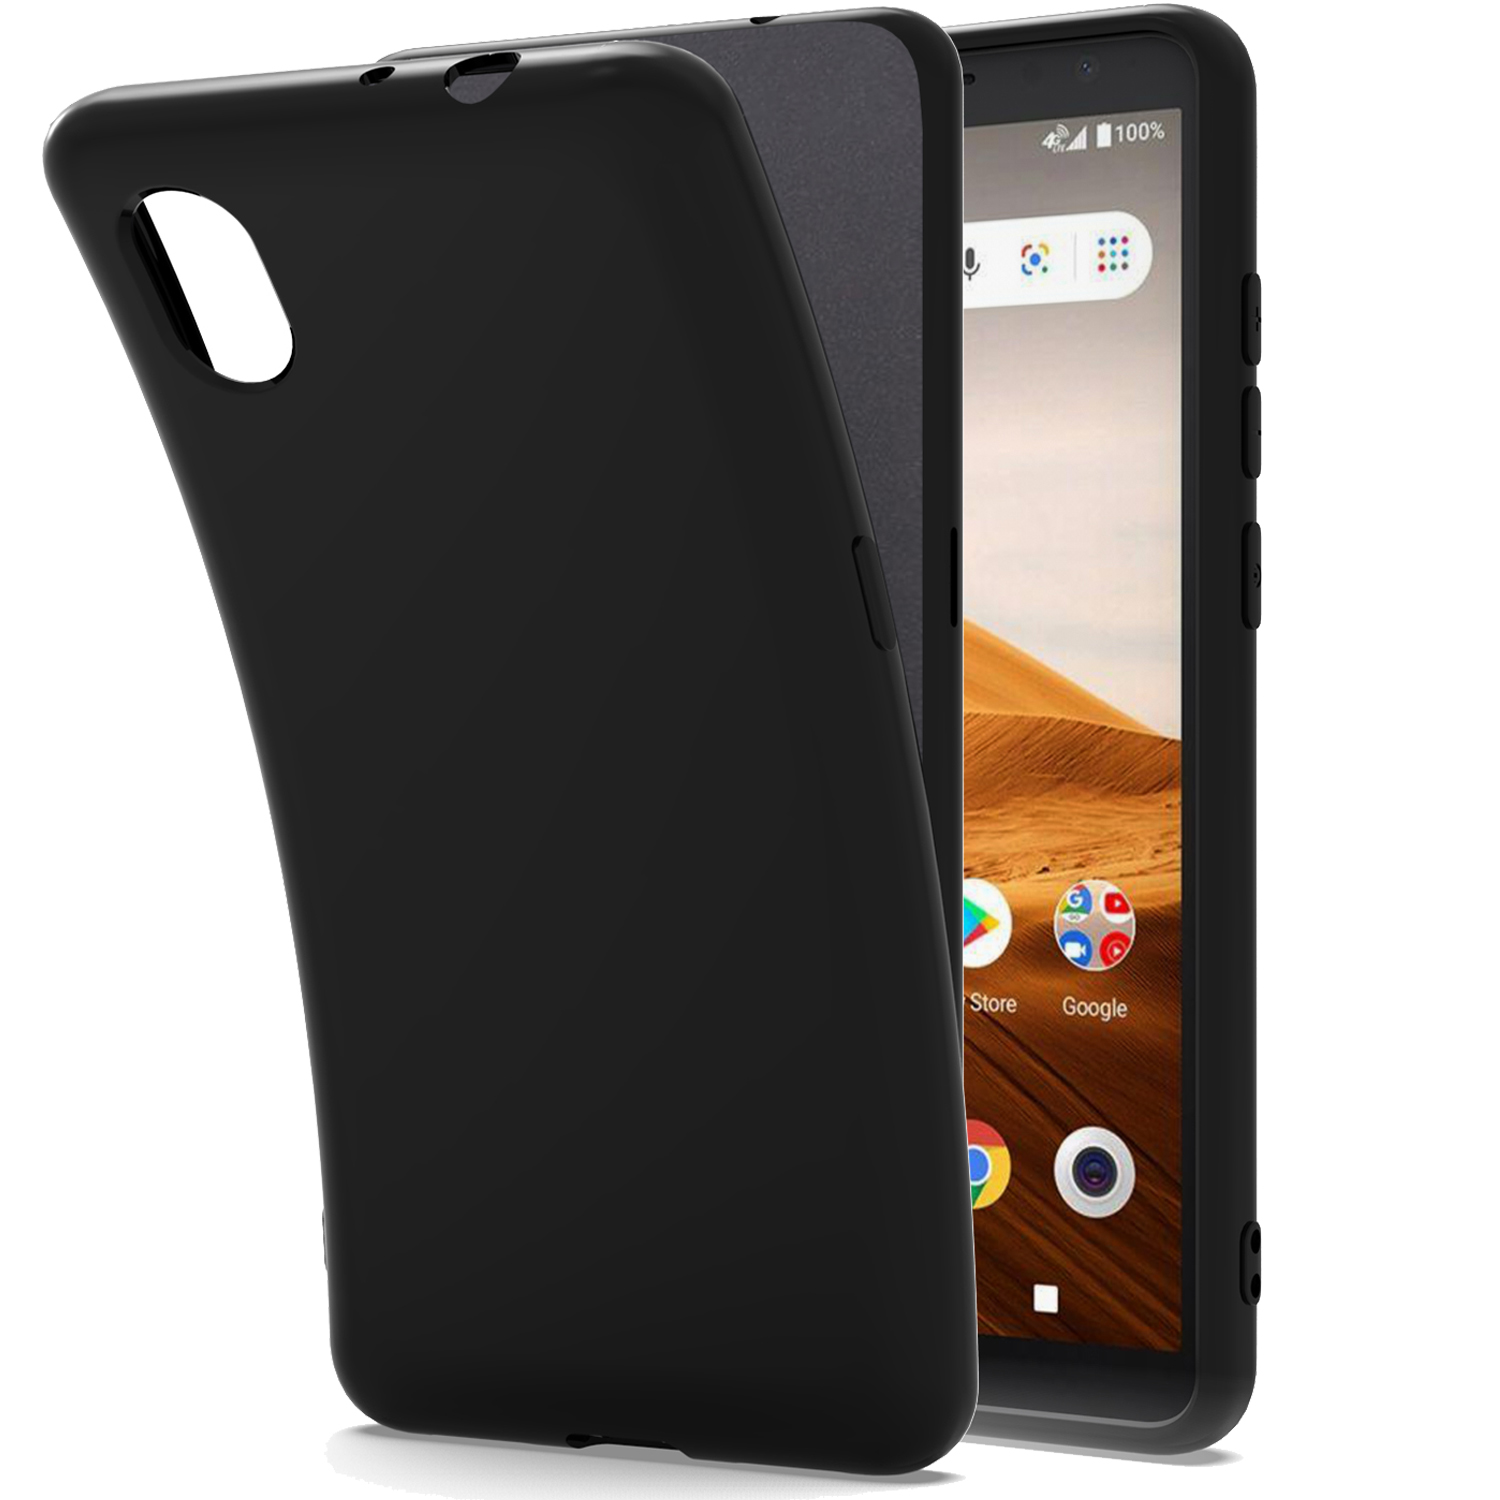 List of 3D-enabled mobile phones